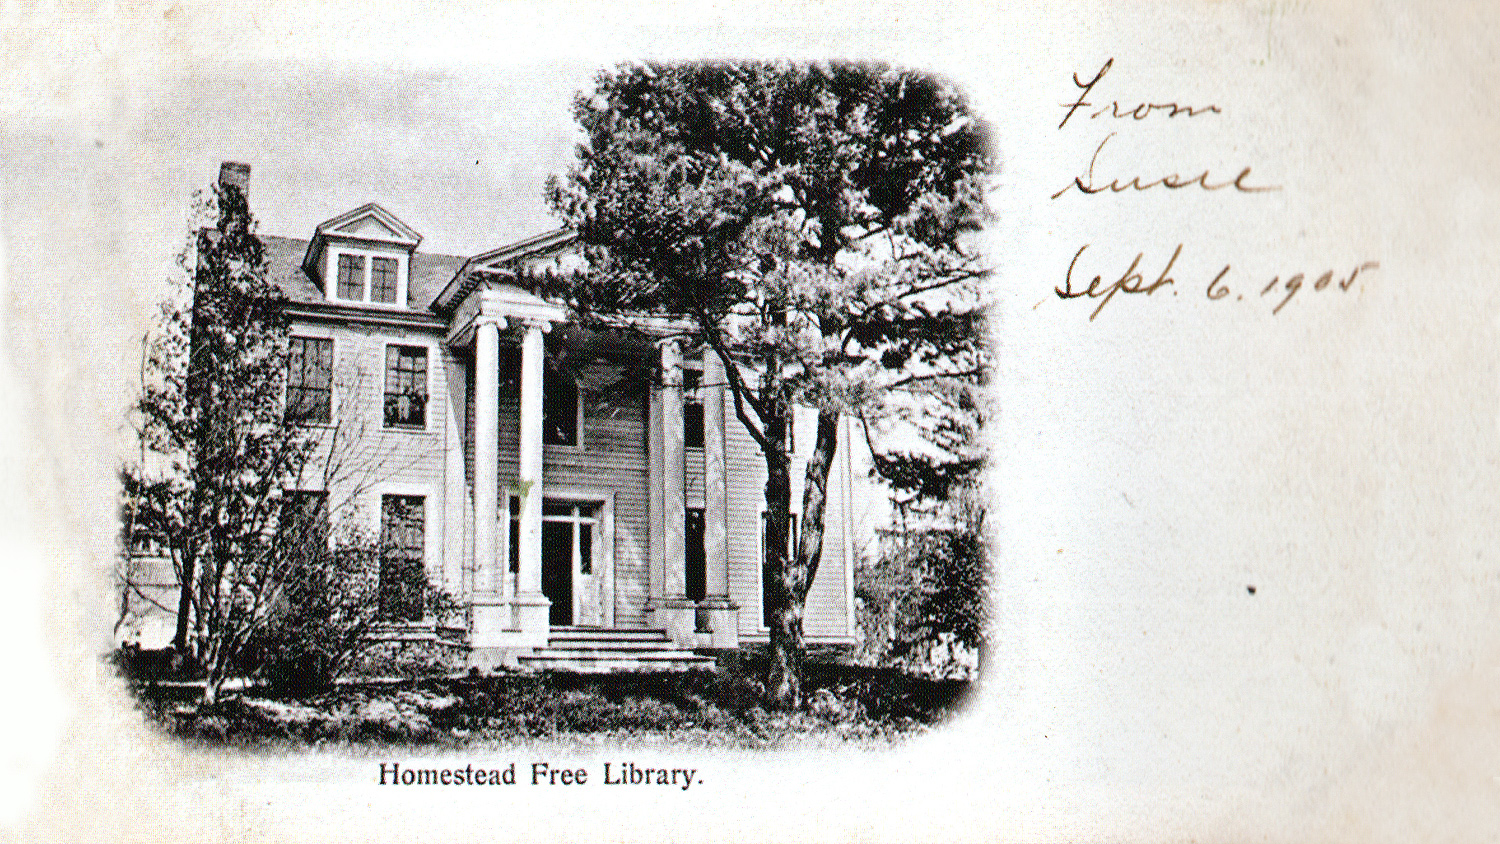 milford-community-house-restoration-postcard